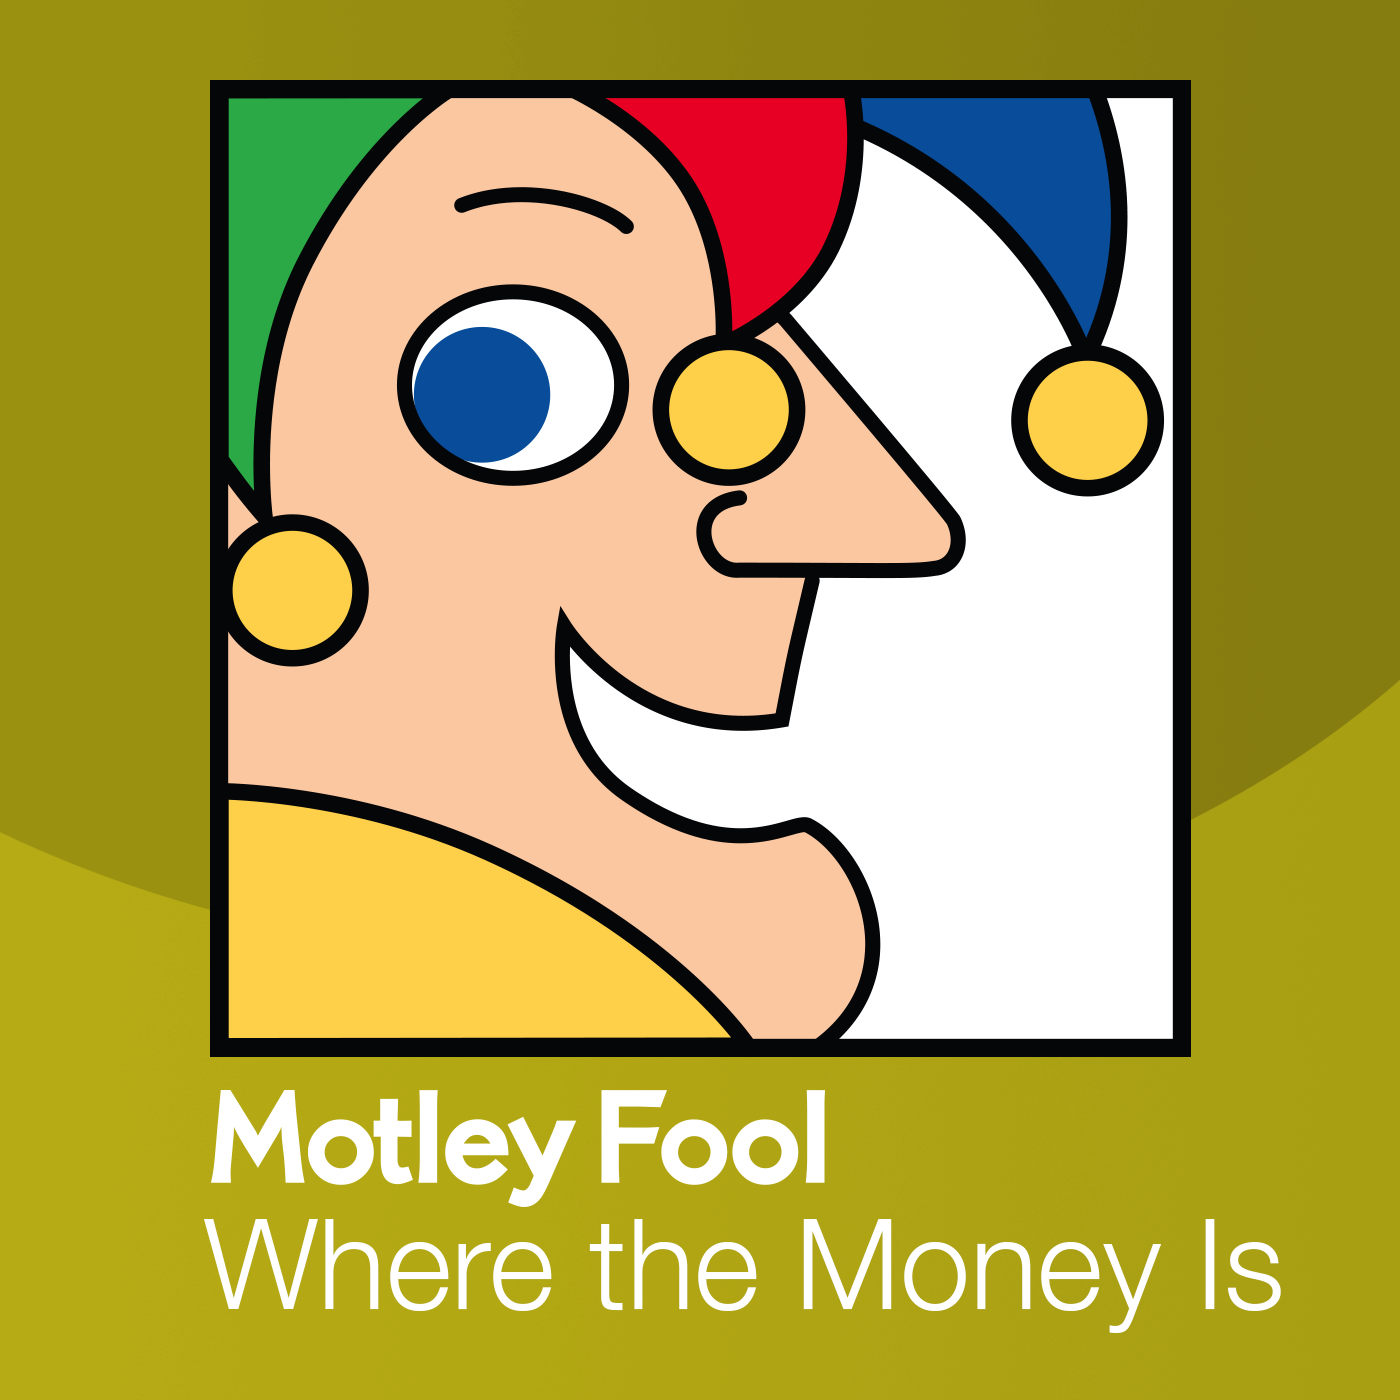 Where the Money Is 03.26.14